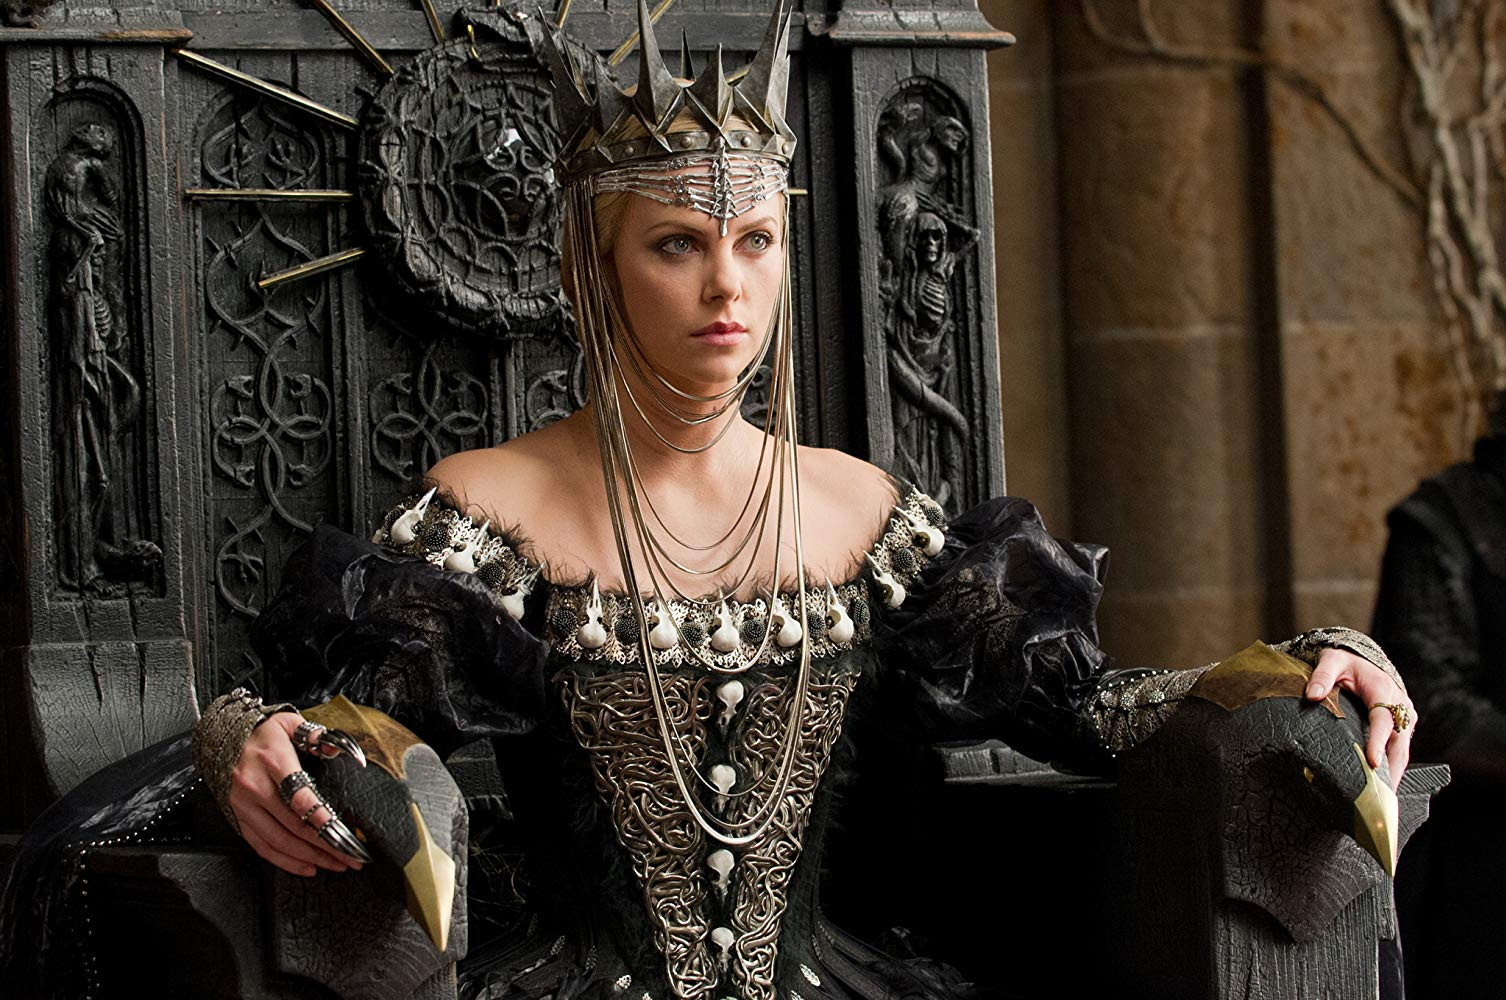 Charlize Theron as the Wicked Witch, Queen Ravenna in Snow White and the Huntsman (2012)